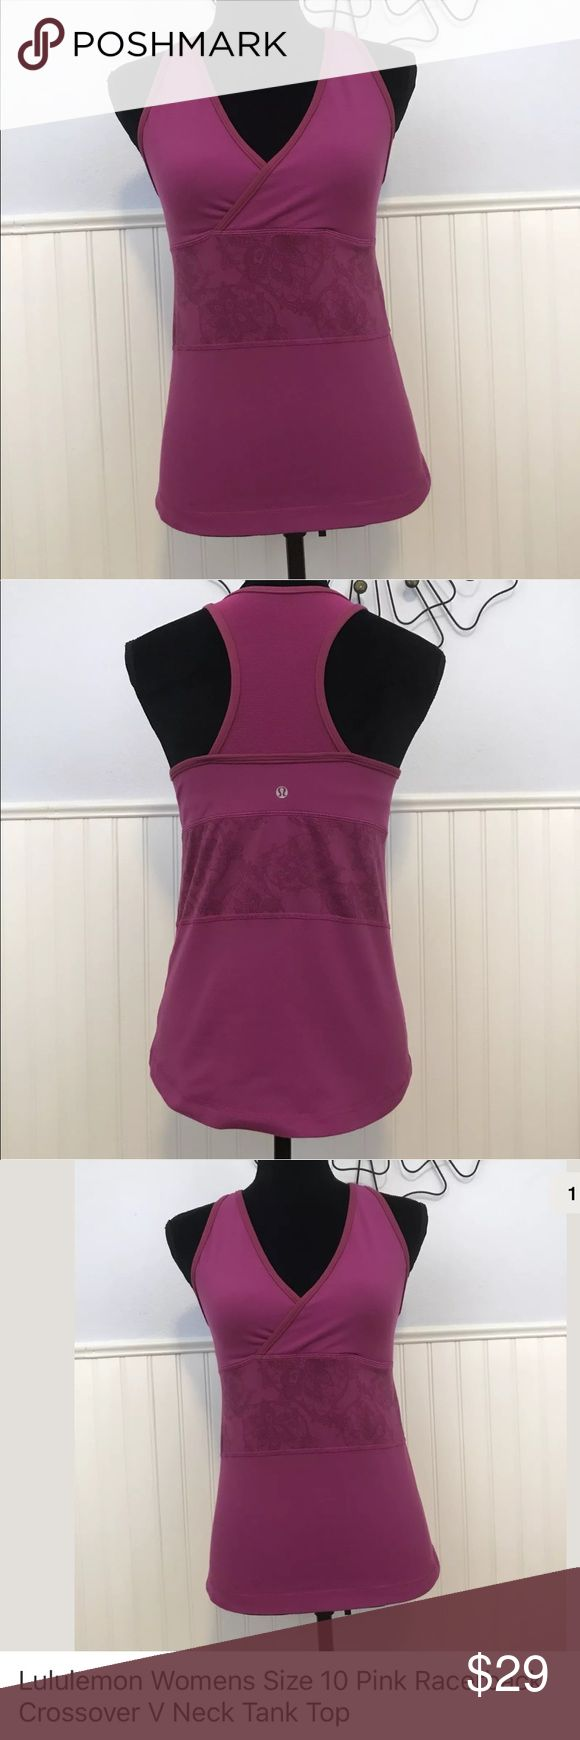 Lululemon pink racerback crossover tank top bra 10 Pre-loved Lululemon Athletica racerback tank top bra. Athletic wear. Size 10 pink Check out my closet, we have a variety of women's, Lululemon, Pink VS Victoria Secret, handbags 👜 purse 👛 Aerosoles, shoes 👠 sandals, Gold, silver, black chocker, fashion jewelry, necklace, dresses, tops, blouse, skirts, bags, leggings, pants, makeup, Beauty & more... Fast shipper. Smoke & Pet-Free.  Don't forget to bundle & save! Offers 30% OFF discount…